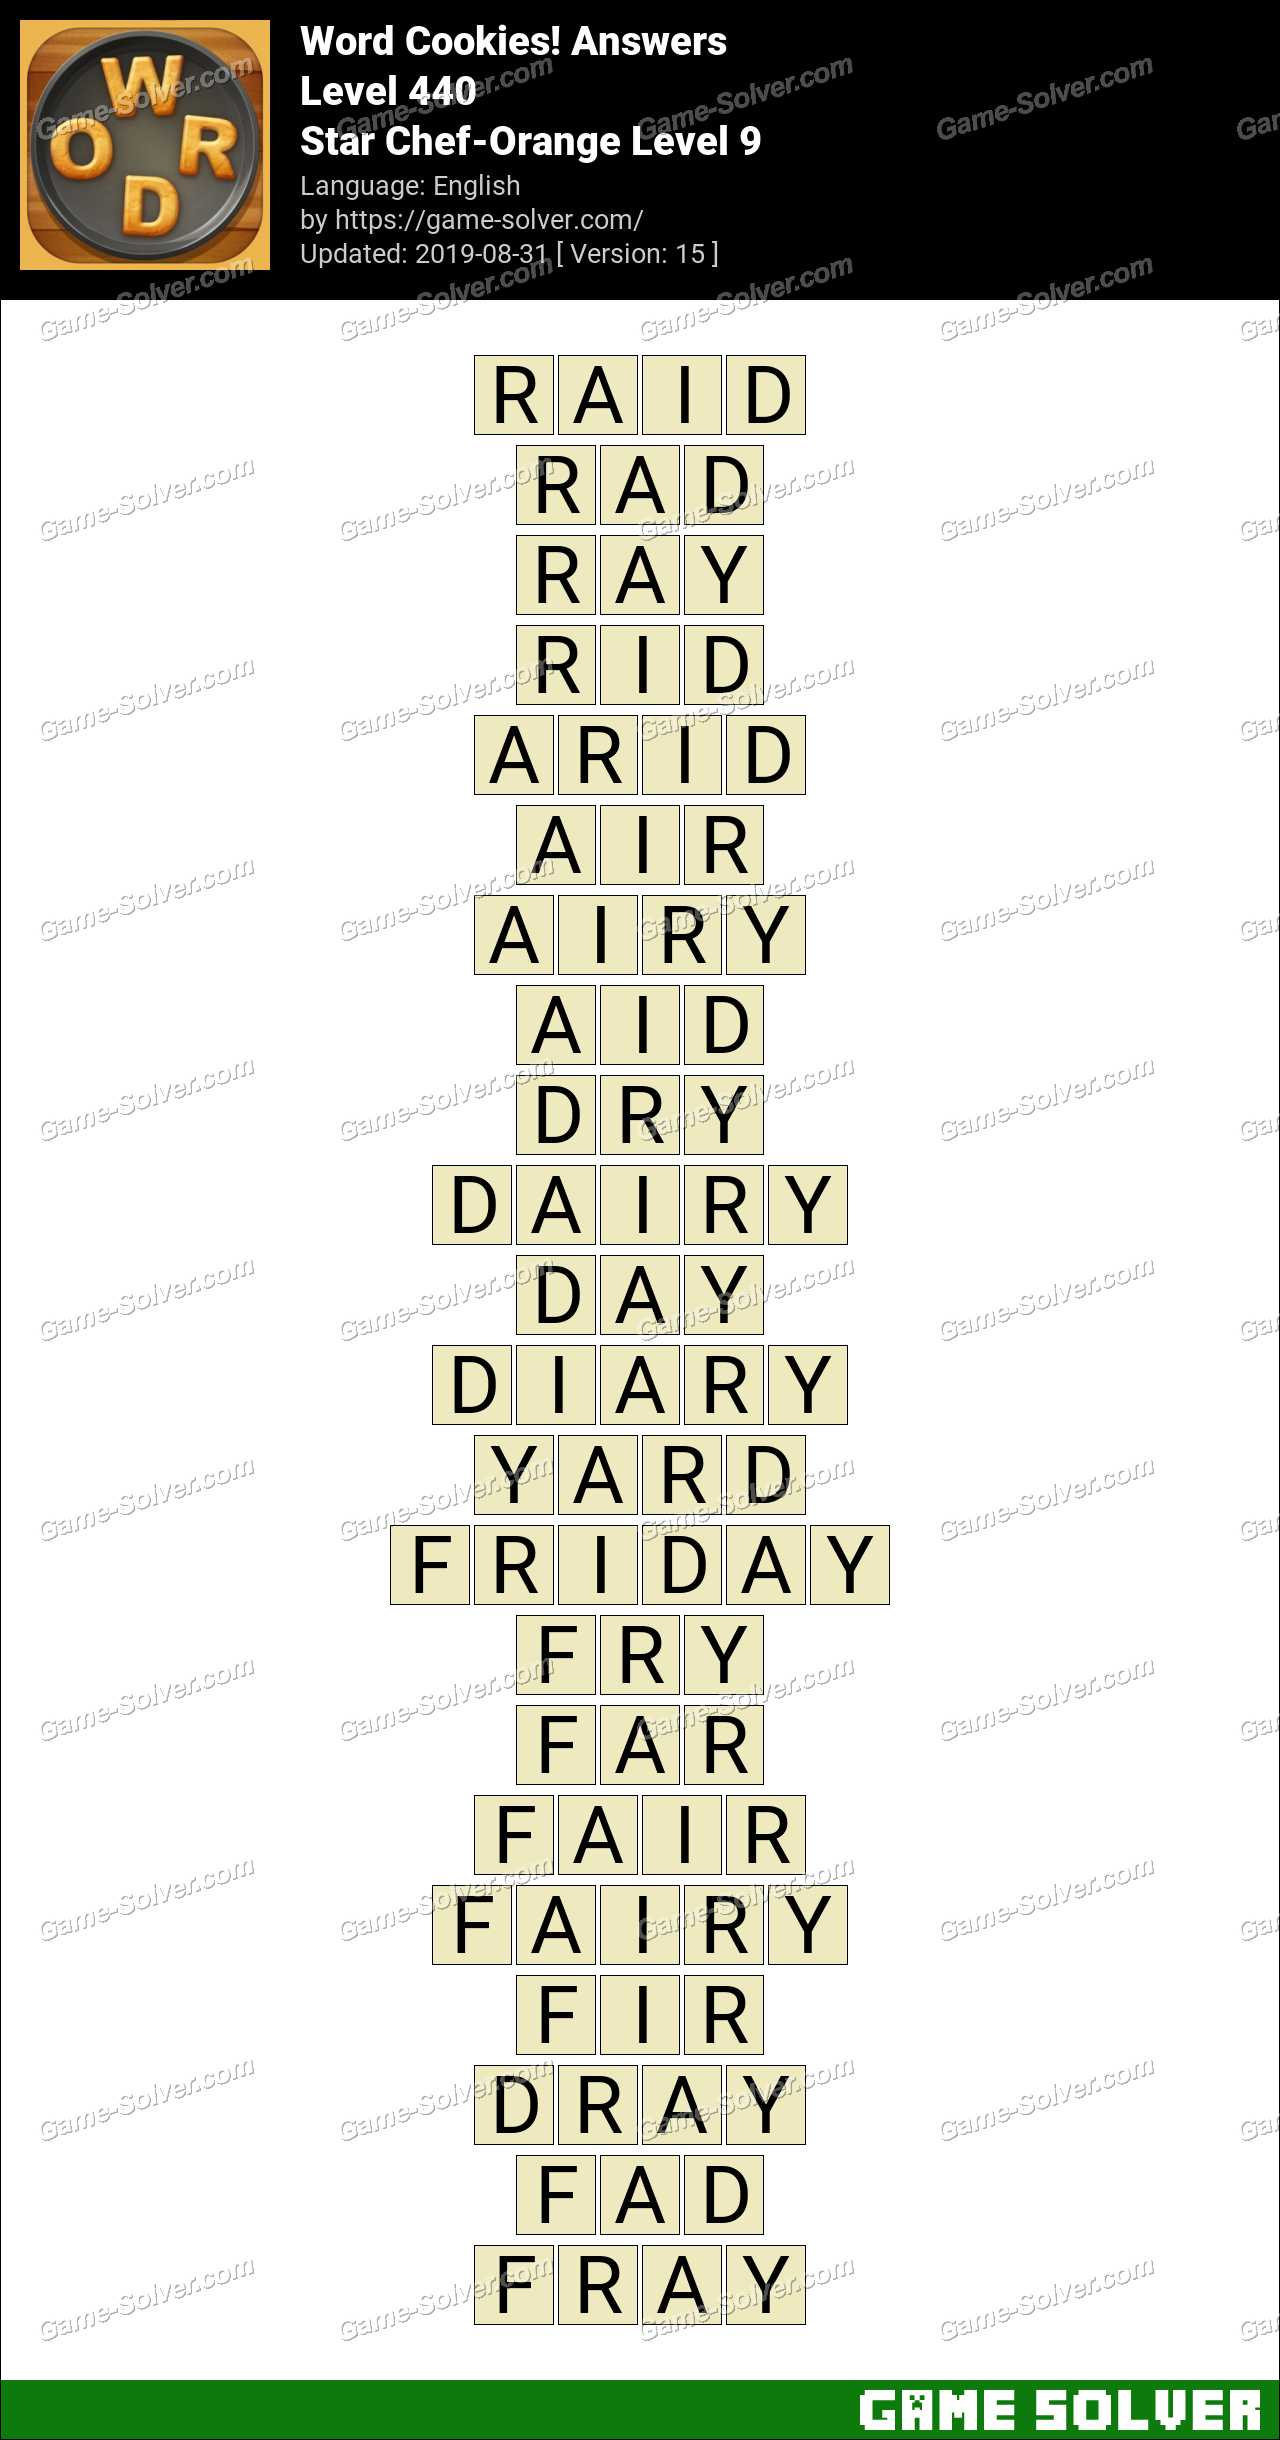 Word Cookies Star Chef-Orange Level 9 Answers